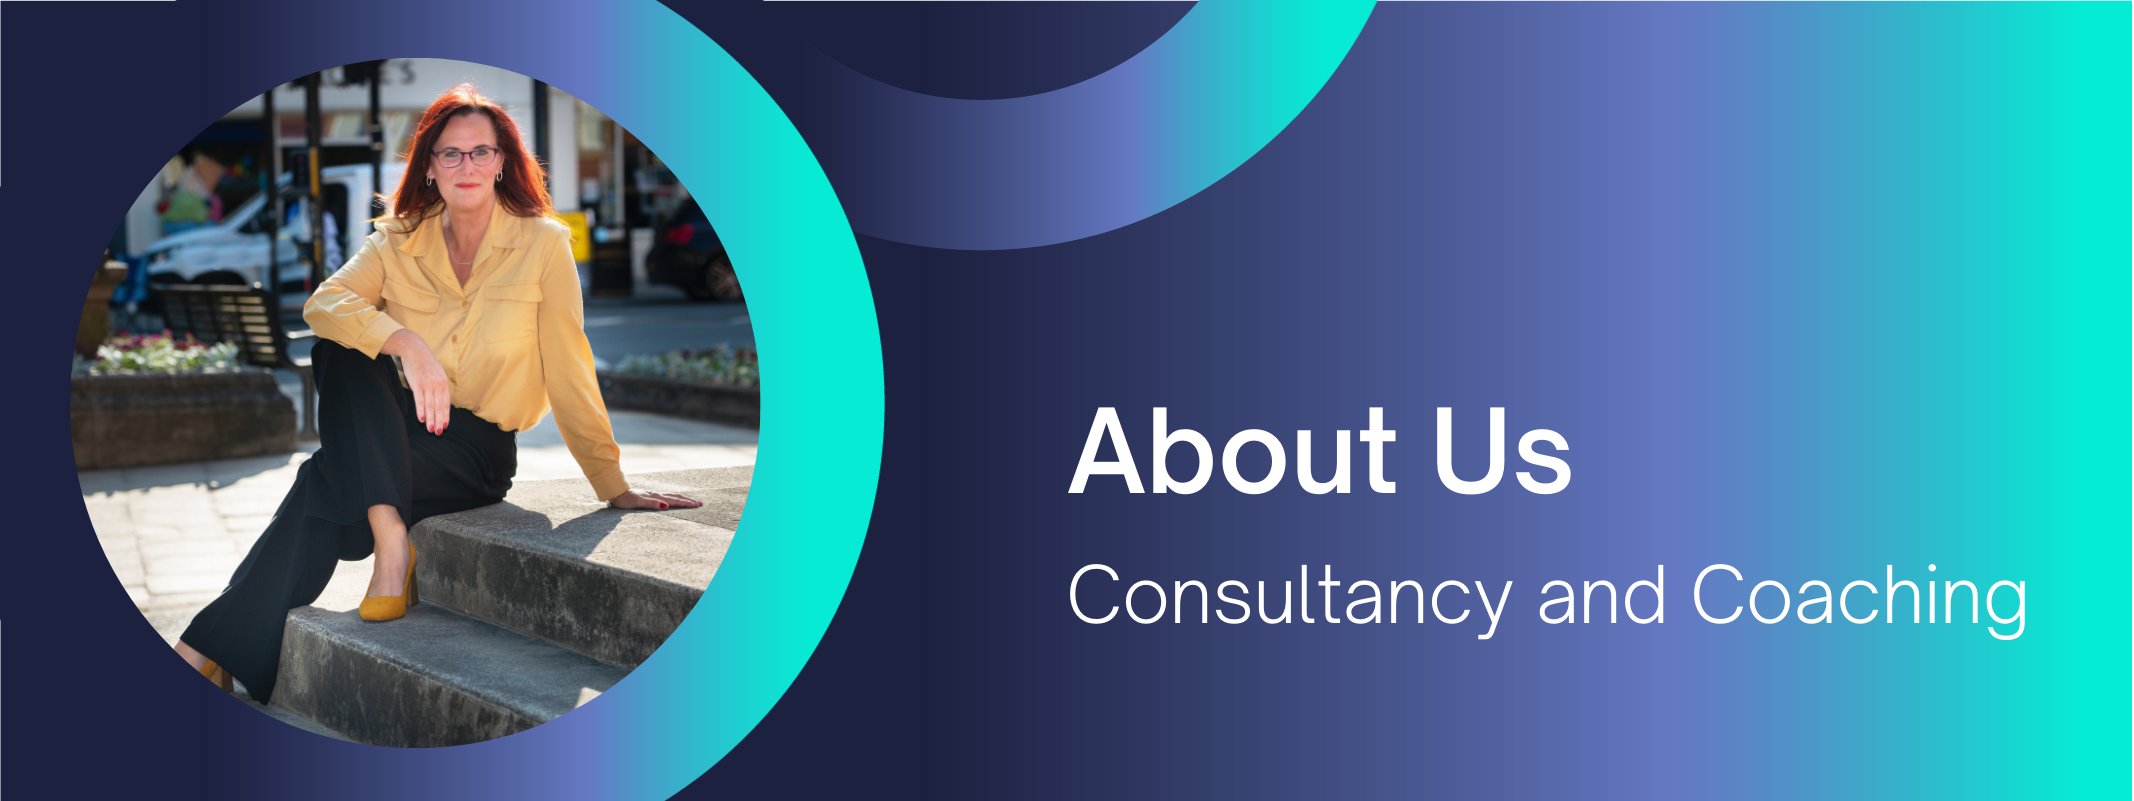 About Us, Consultancy and Coaching